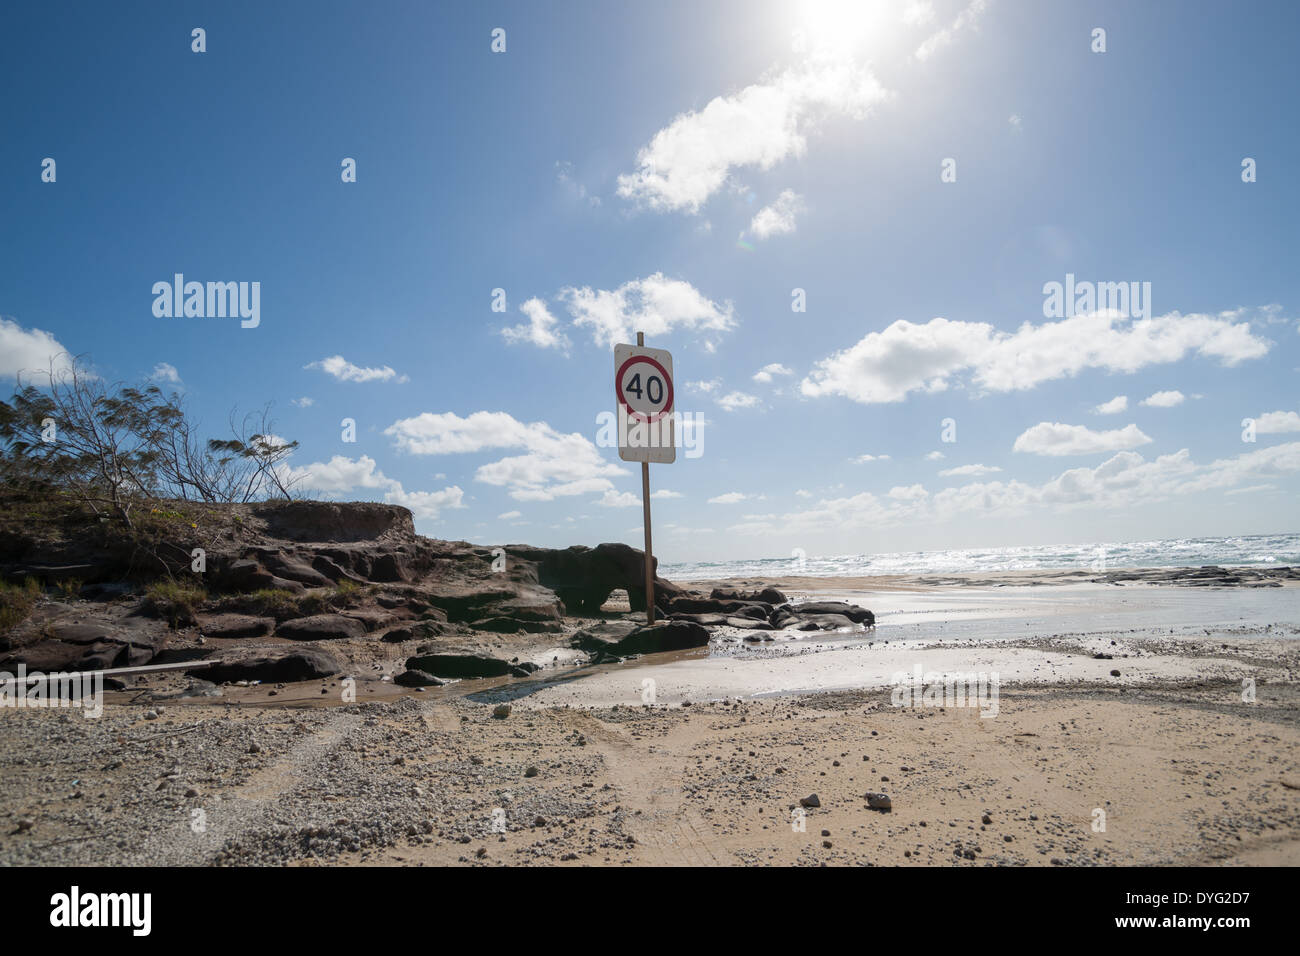 Driver speed restriction sign on Fraser Island, Ten Mile beach in March 2014. - Stock Image